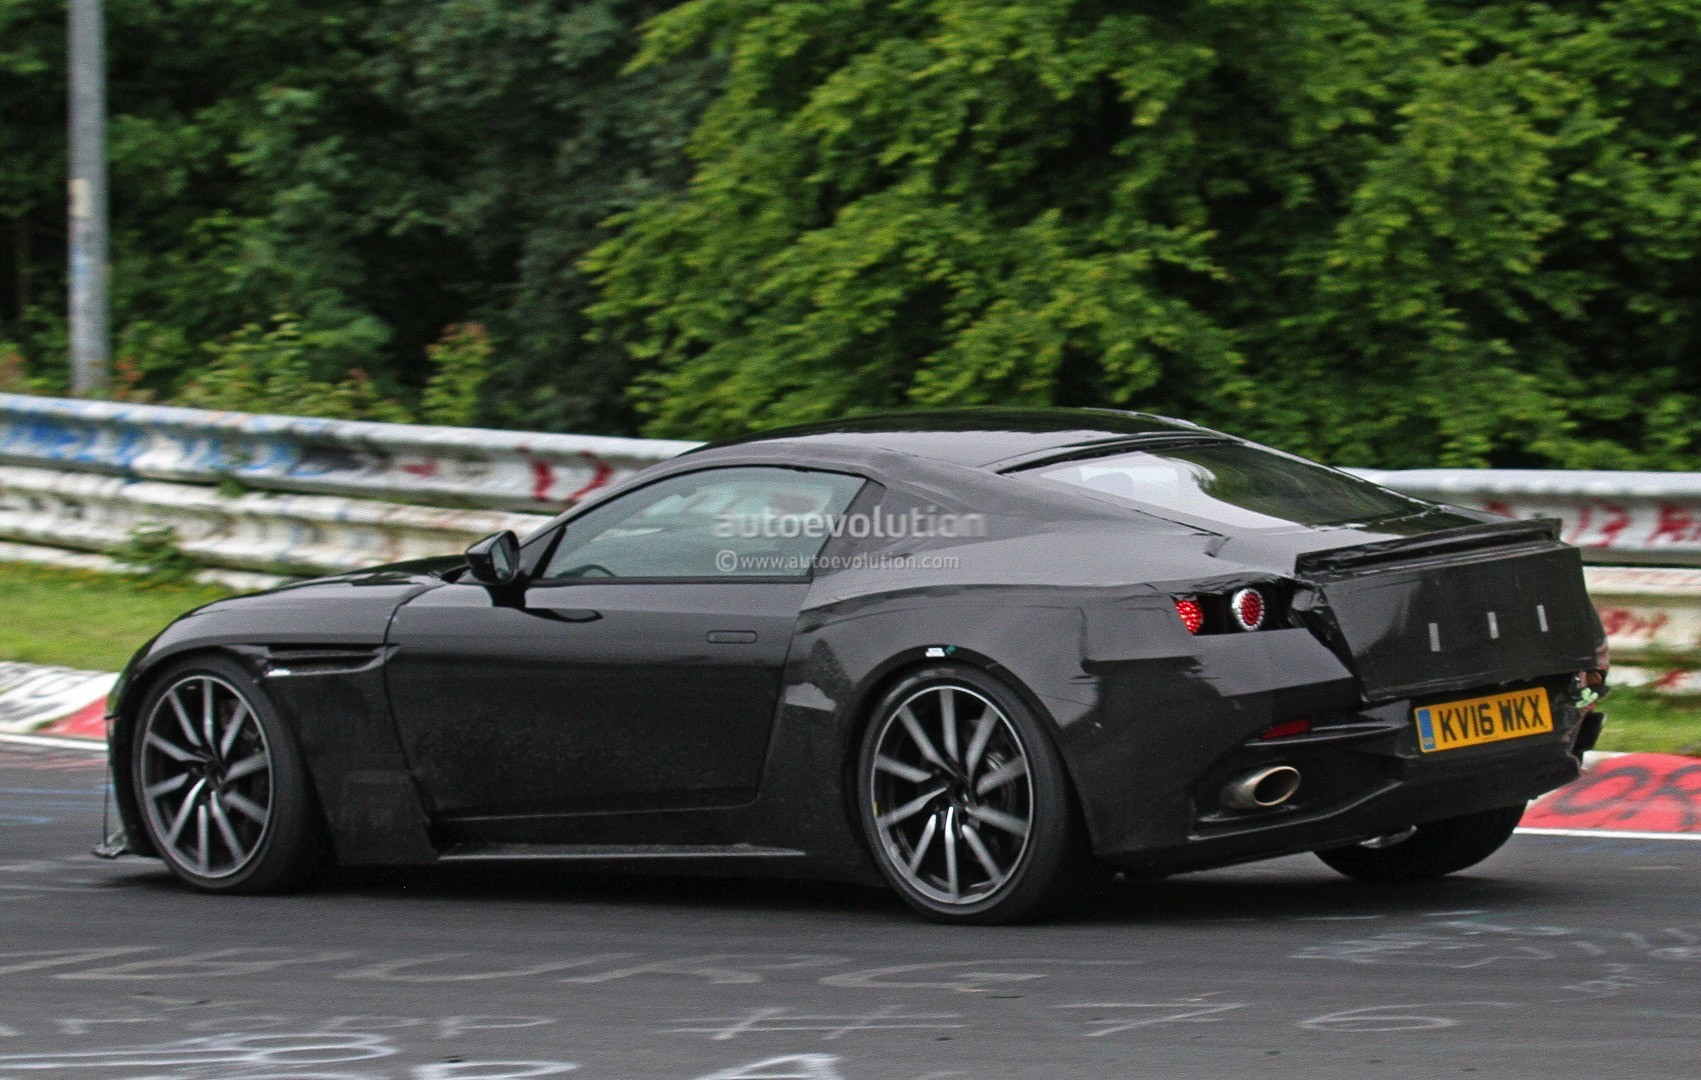 Vantage Promises To Be The Best Handling Aston Martin To Date